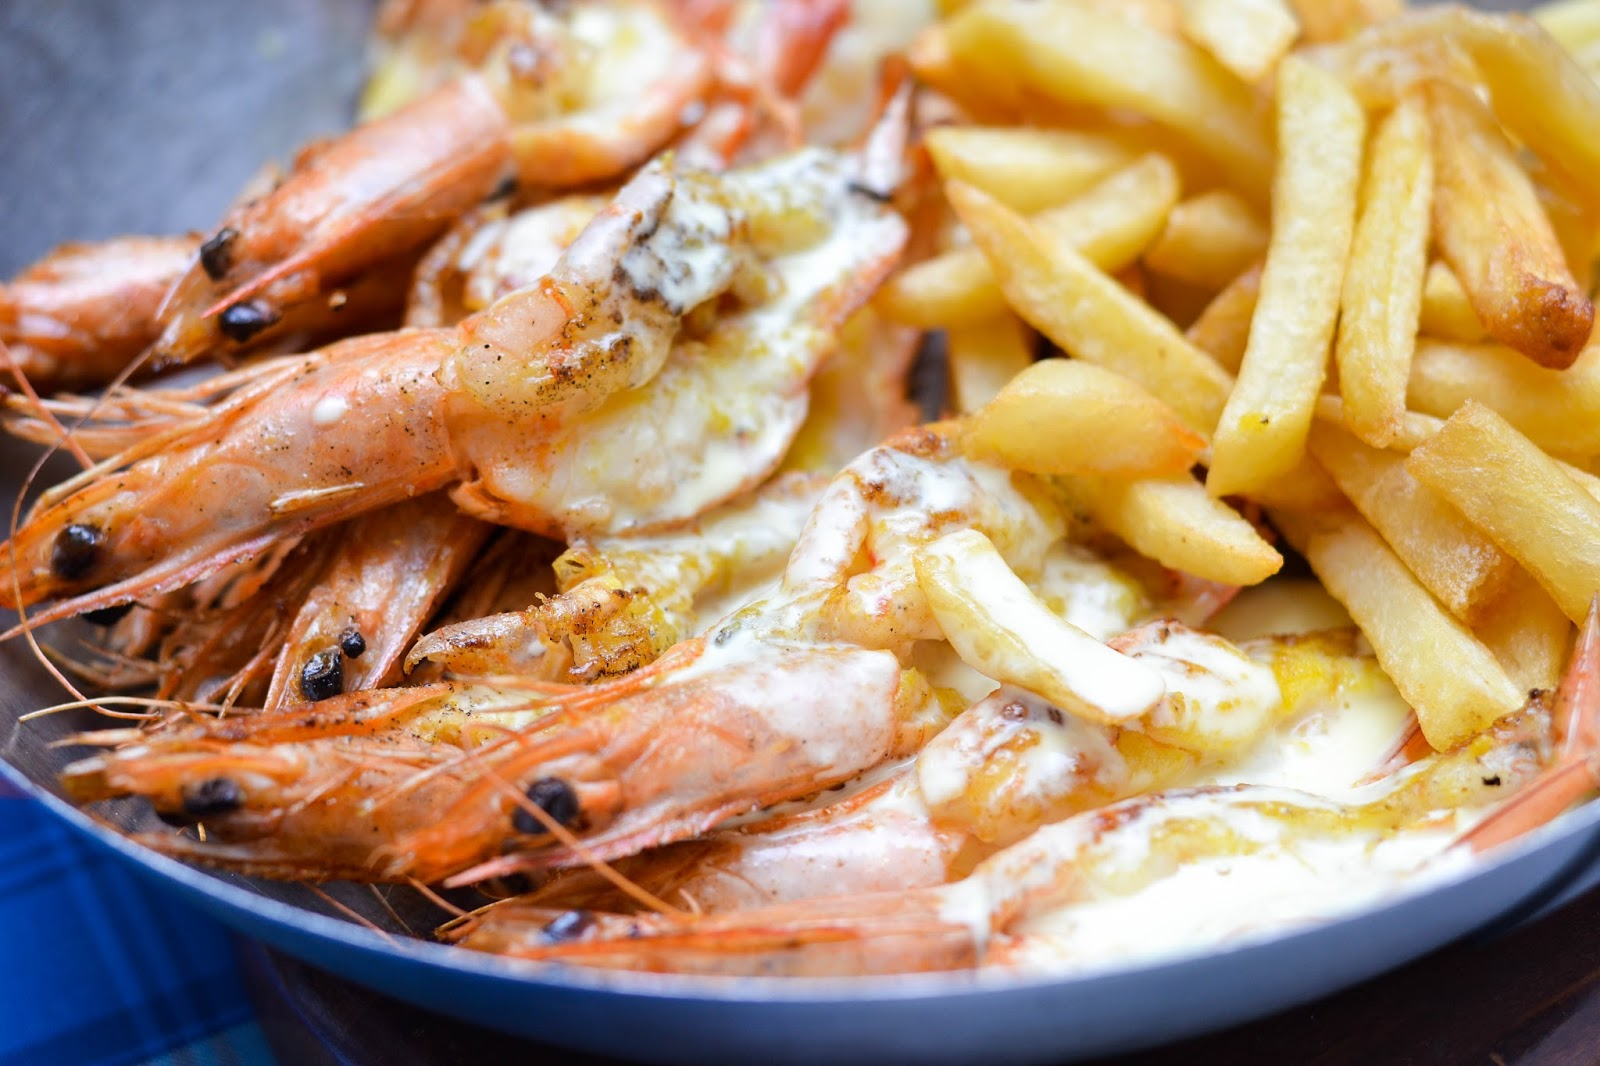 Prince Prawns and Chips from Ocean Basket